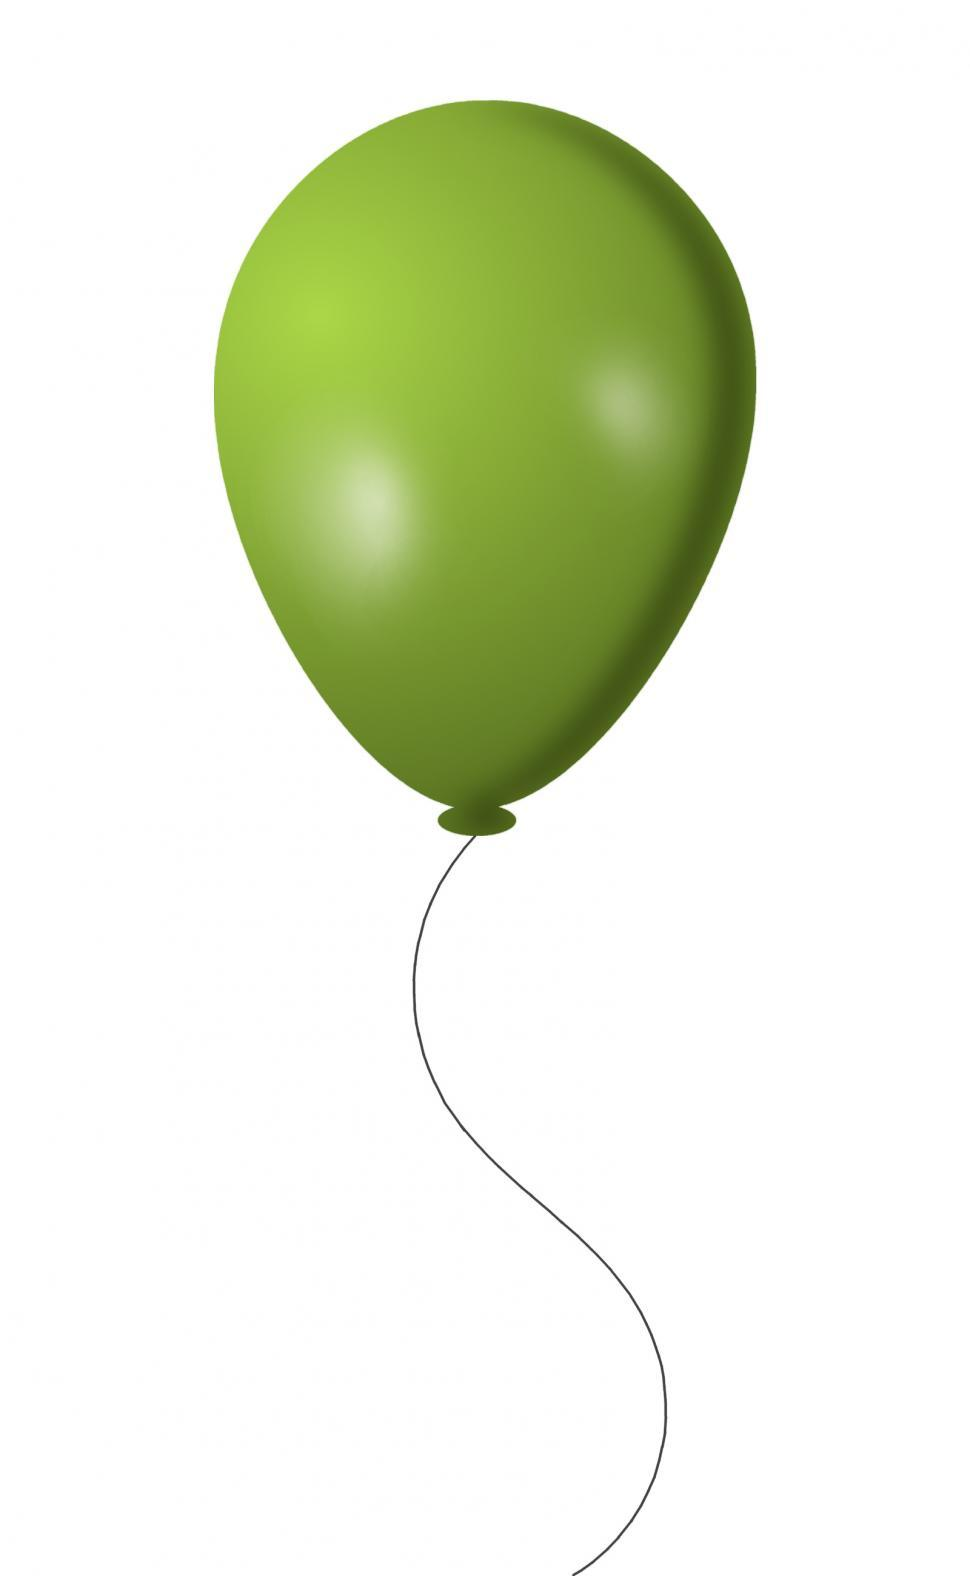 Download Free Stock Photo of Green Balloon